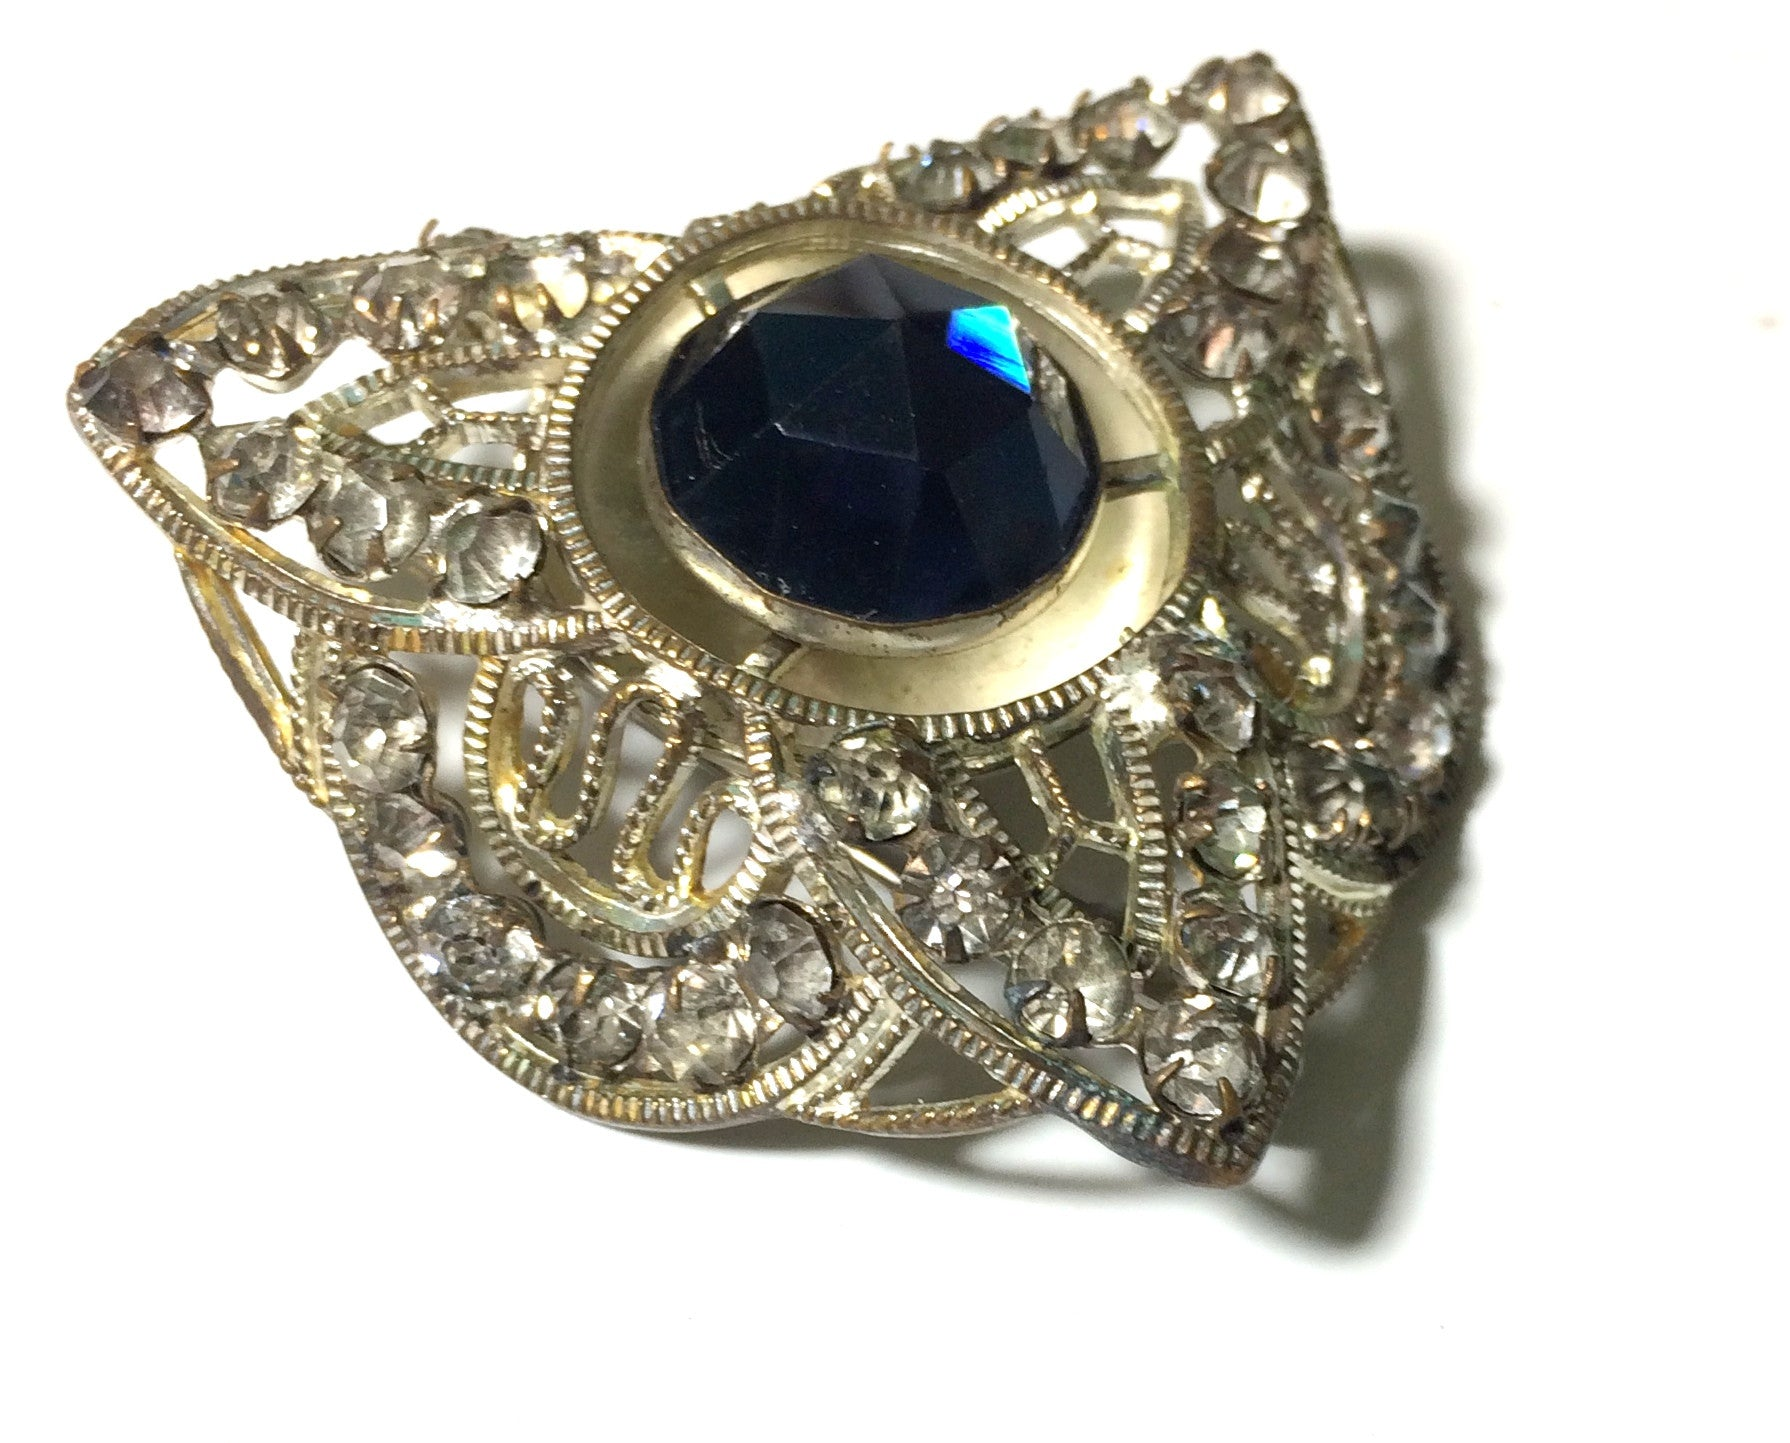 Striking Silver Tone Filigree Metal Brooch w/ Blue Glass circa 1930s